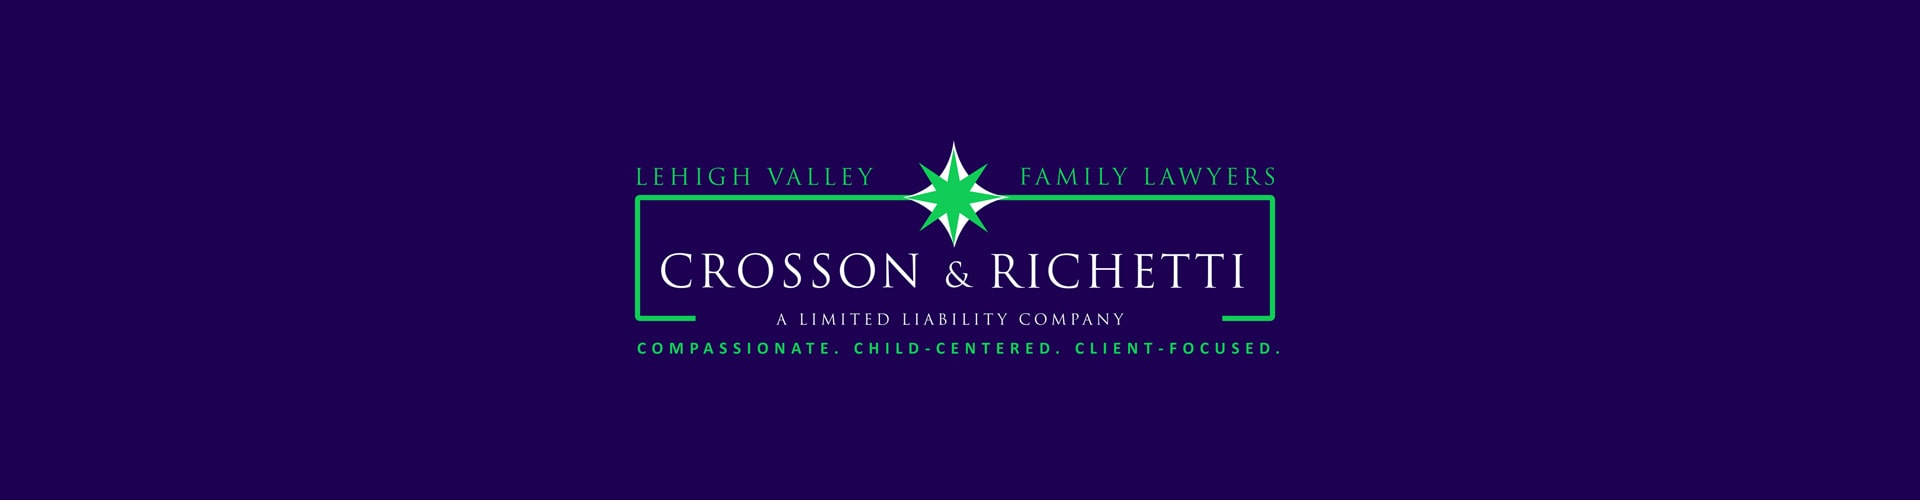 Crosson & Richetti LLC